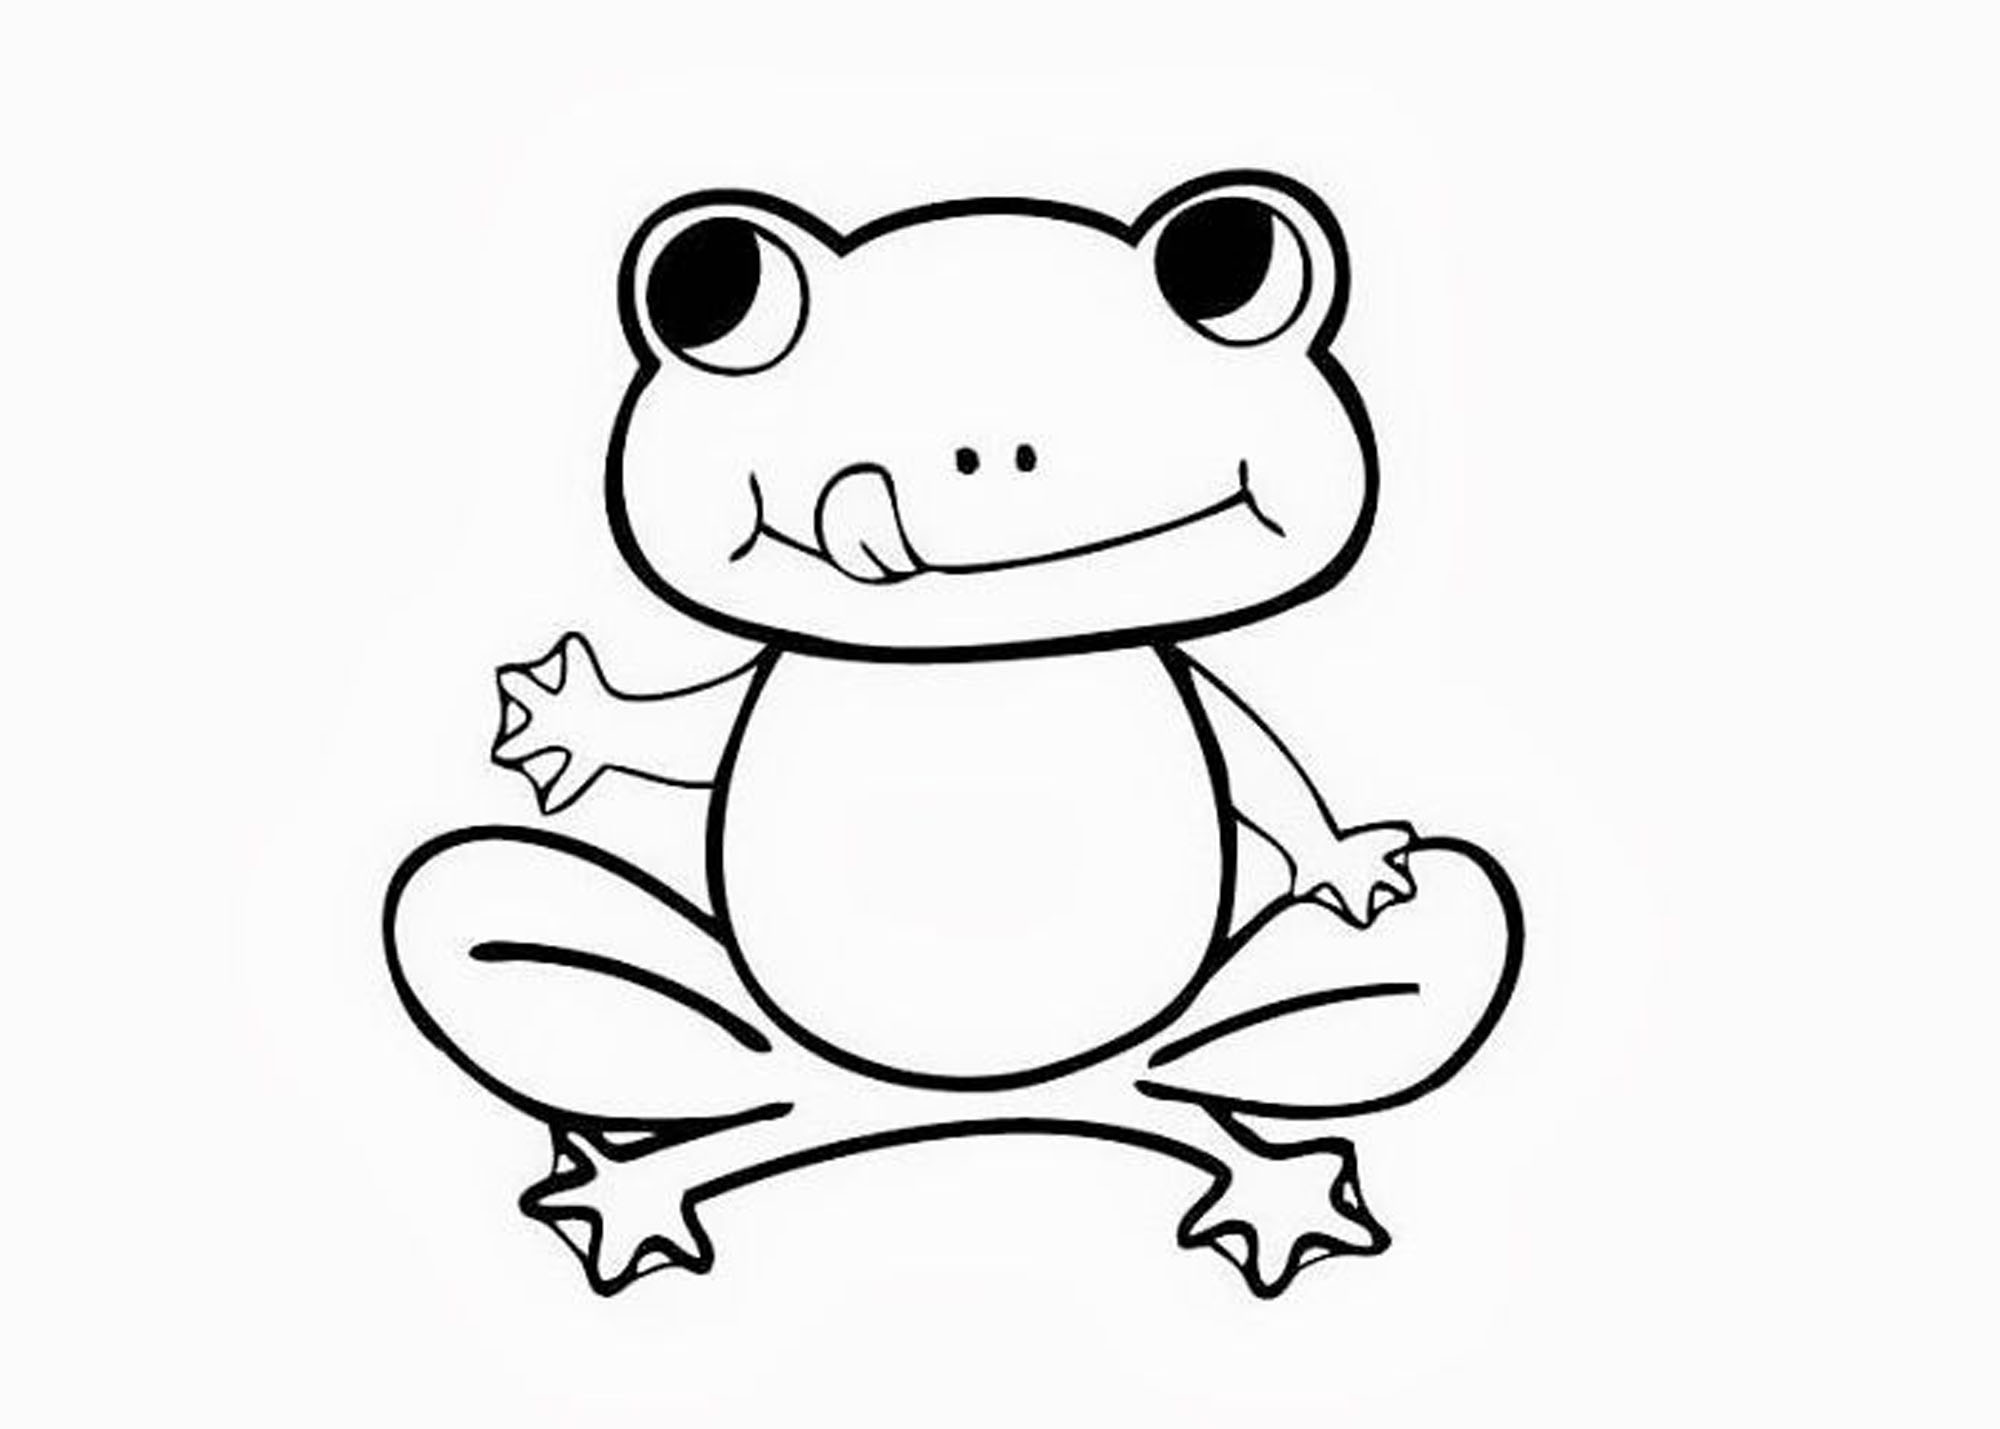 frog coloring pages to print exotic frog coloring page to print or download for fkids frog coloring pages print to